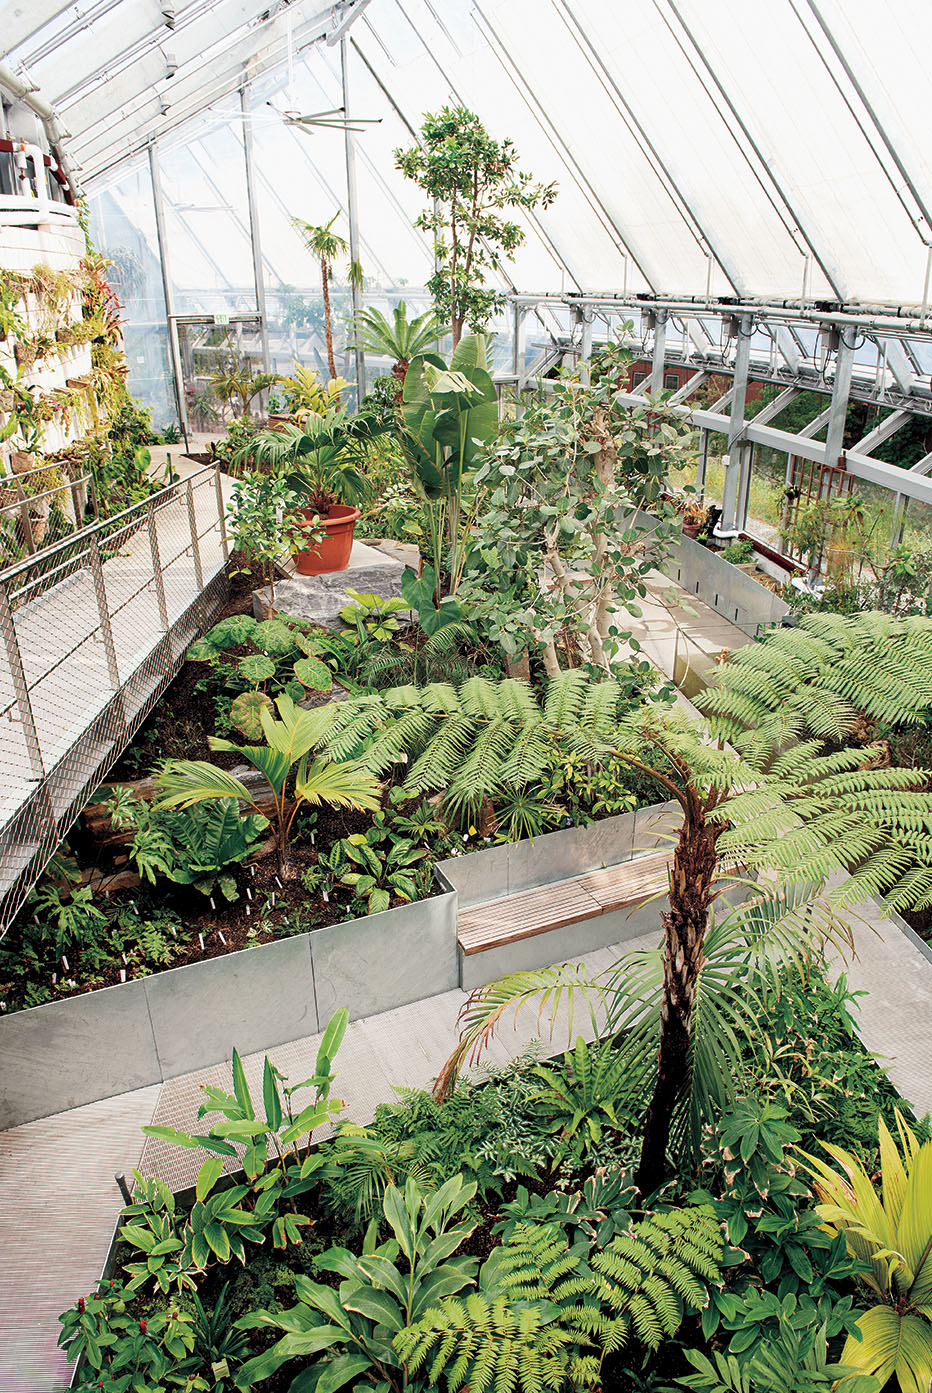 A photo shows a tree fern growing in the new conservatory.